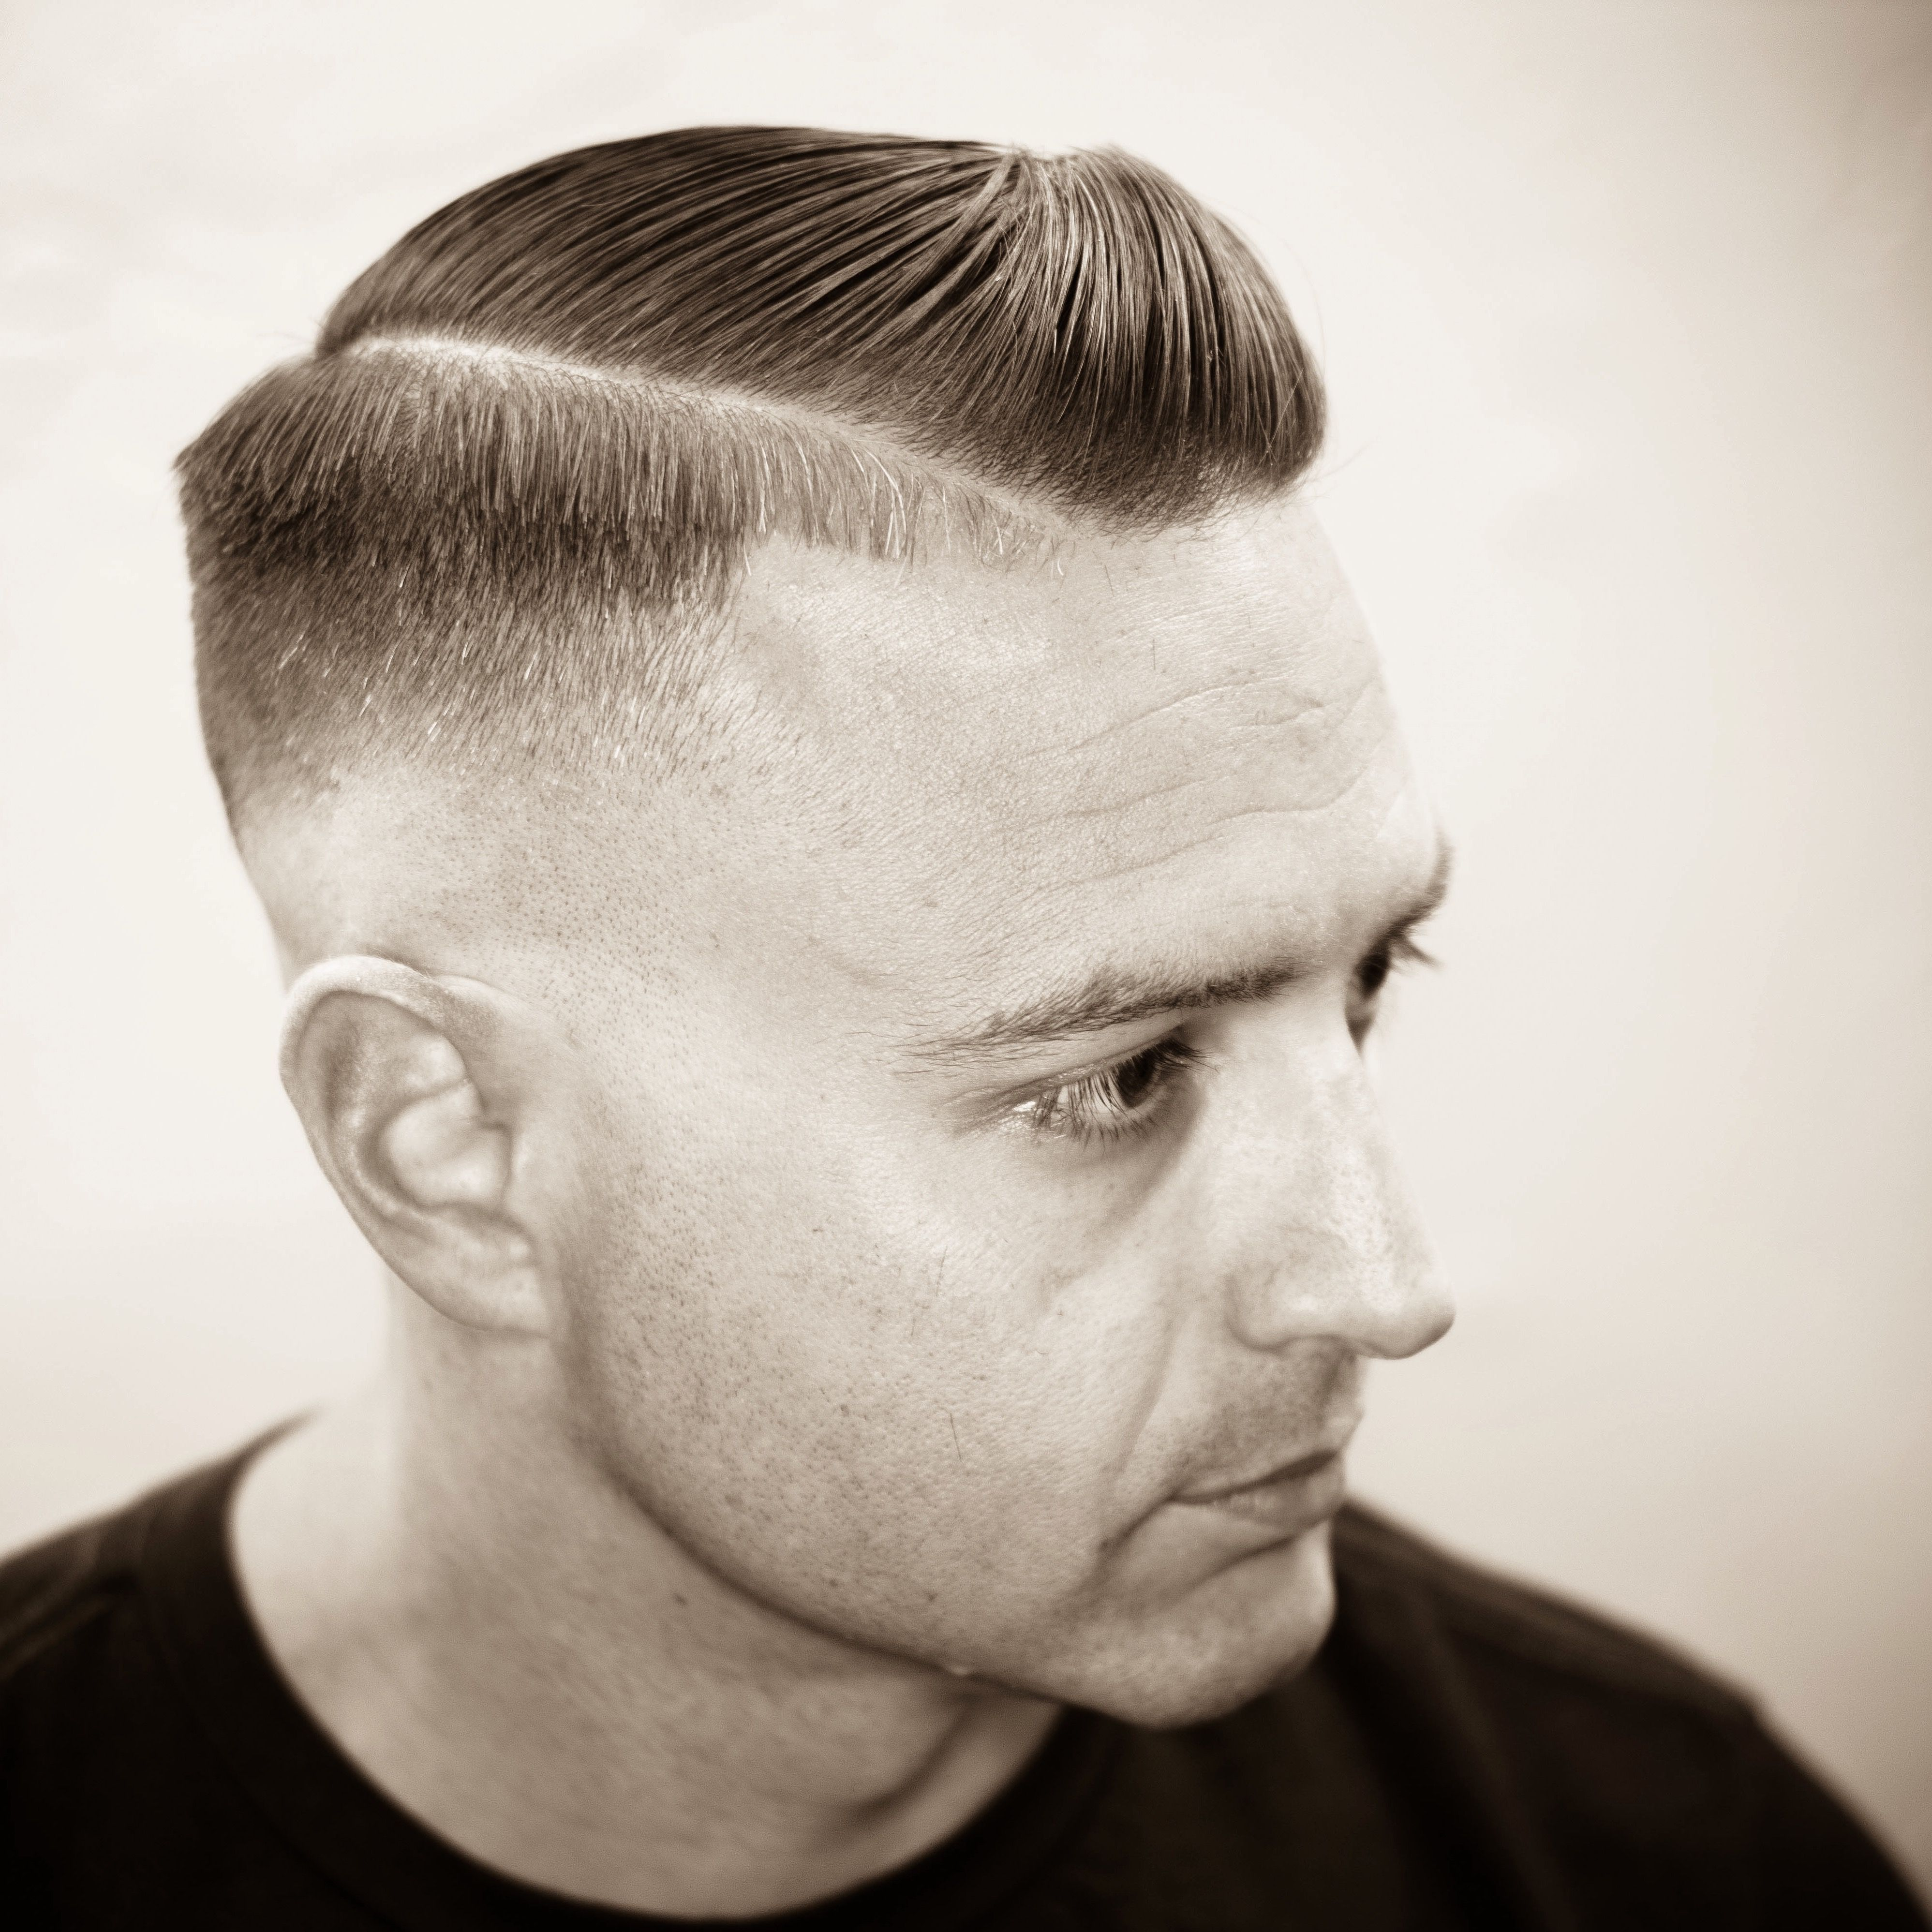 Razor Fade Executive Contour With Hard Part My In 2020 Old School Hairstyles Hairstyles For School Haircuts For Men